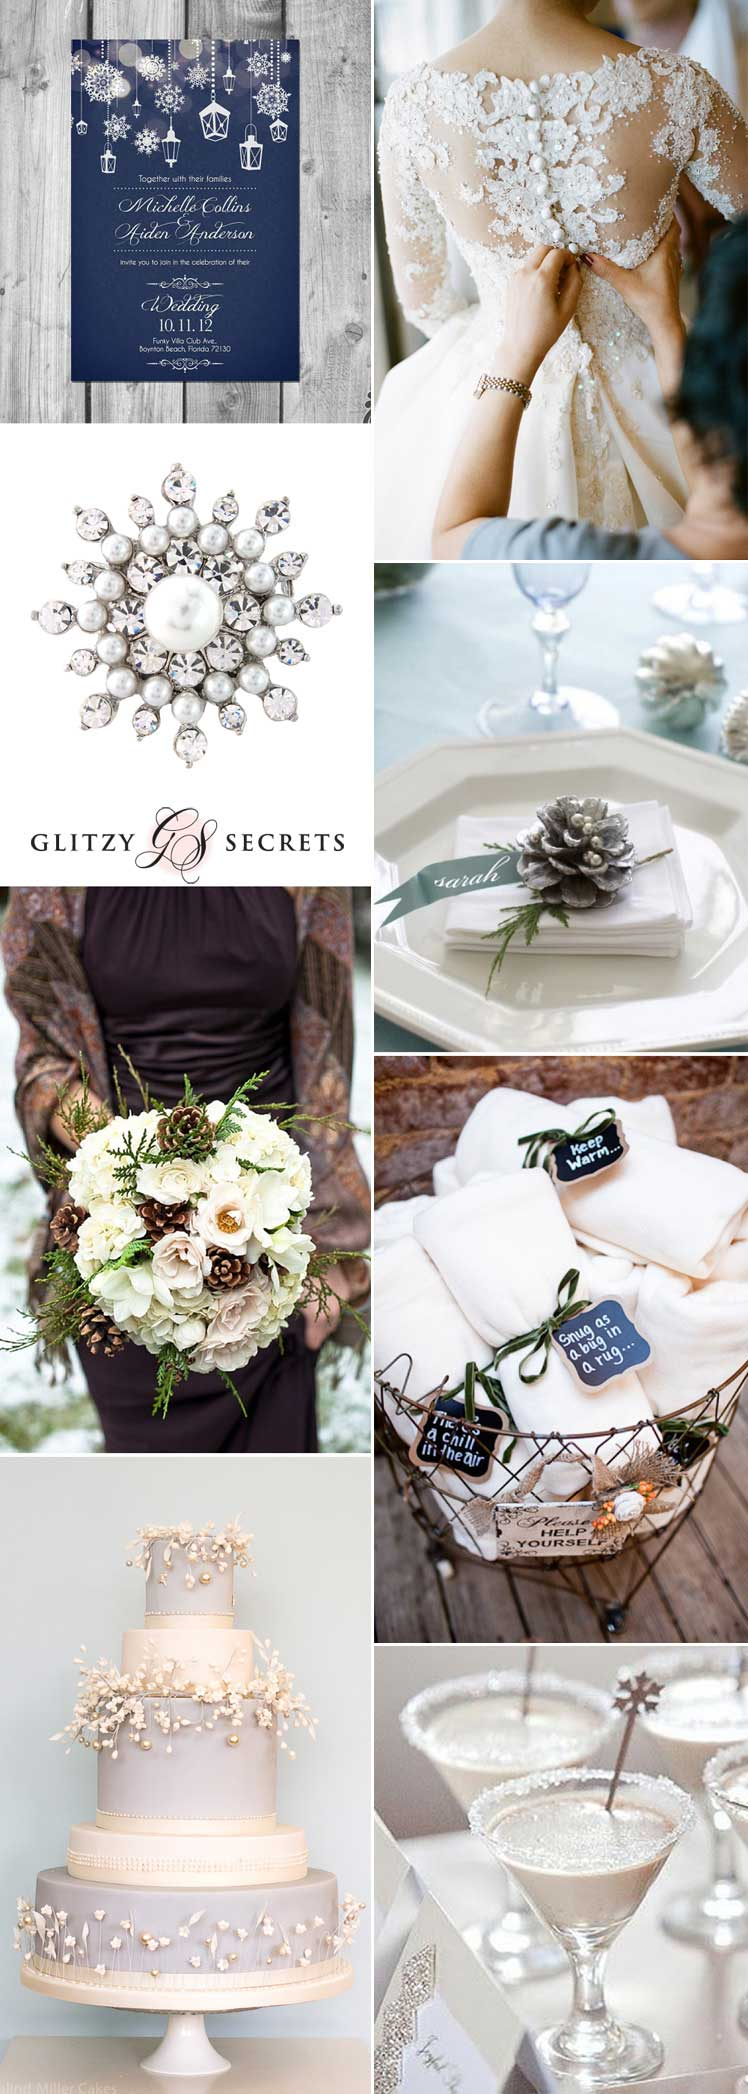 magical winter wonderland wedding inspiration